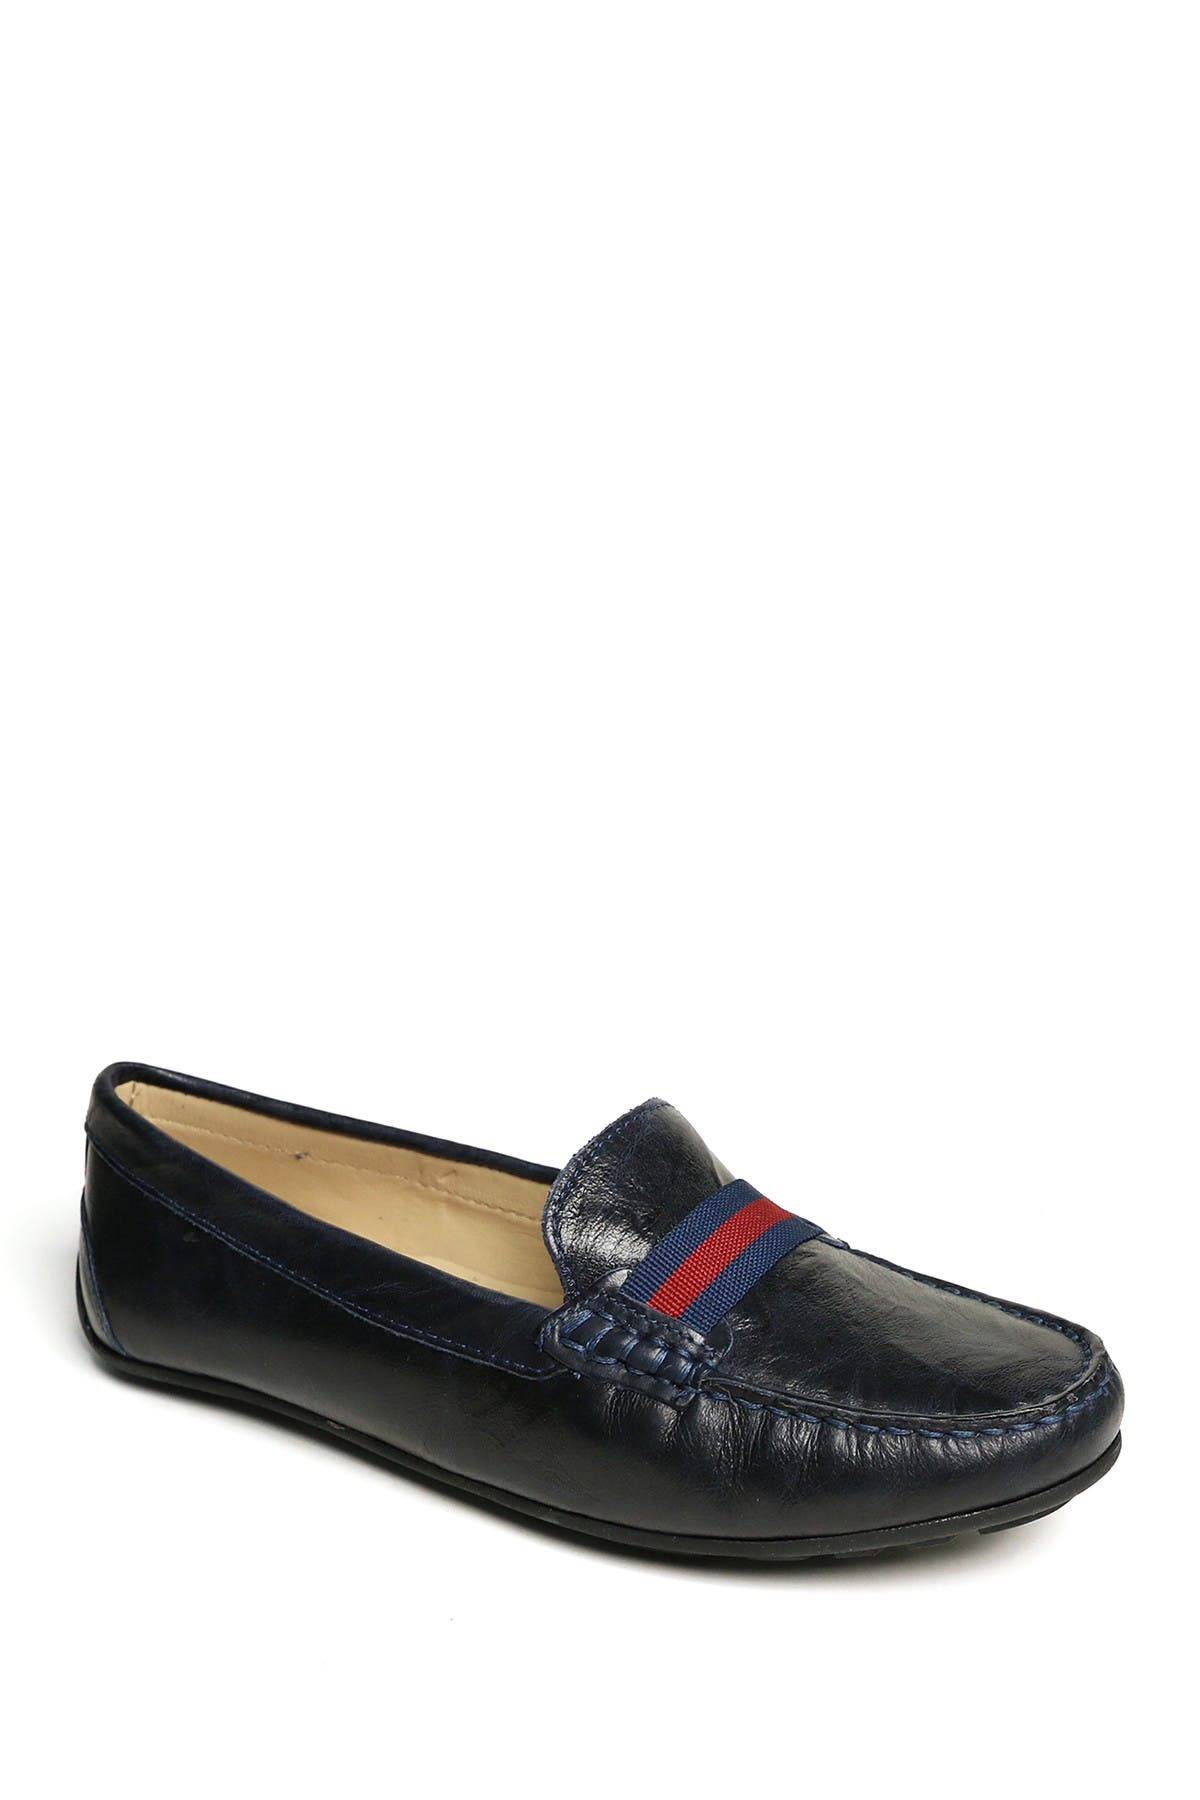 Driver Club USA Kids Boys//Girls Leather Luxury Fashion Driving Loafer with Grow Grain Detail